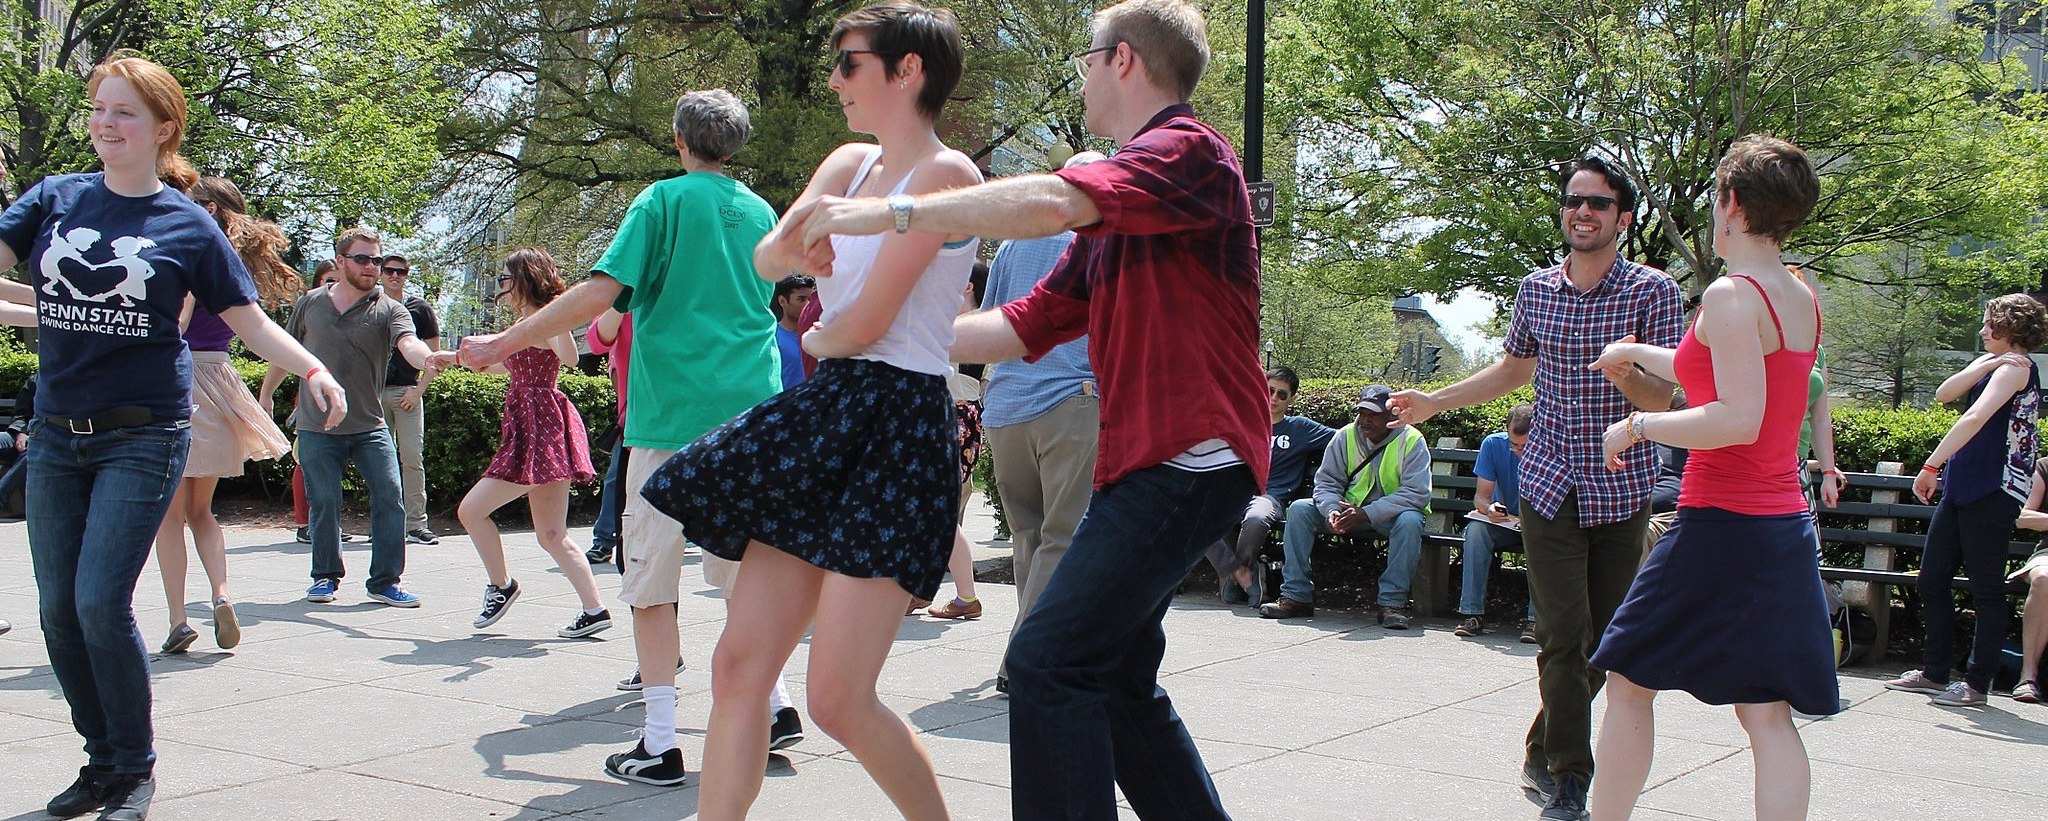 Couple's dance at the park